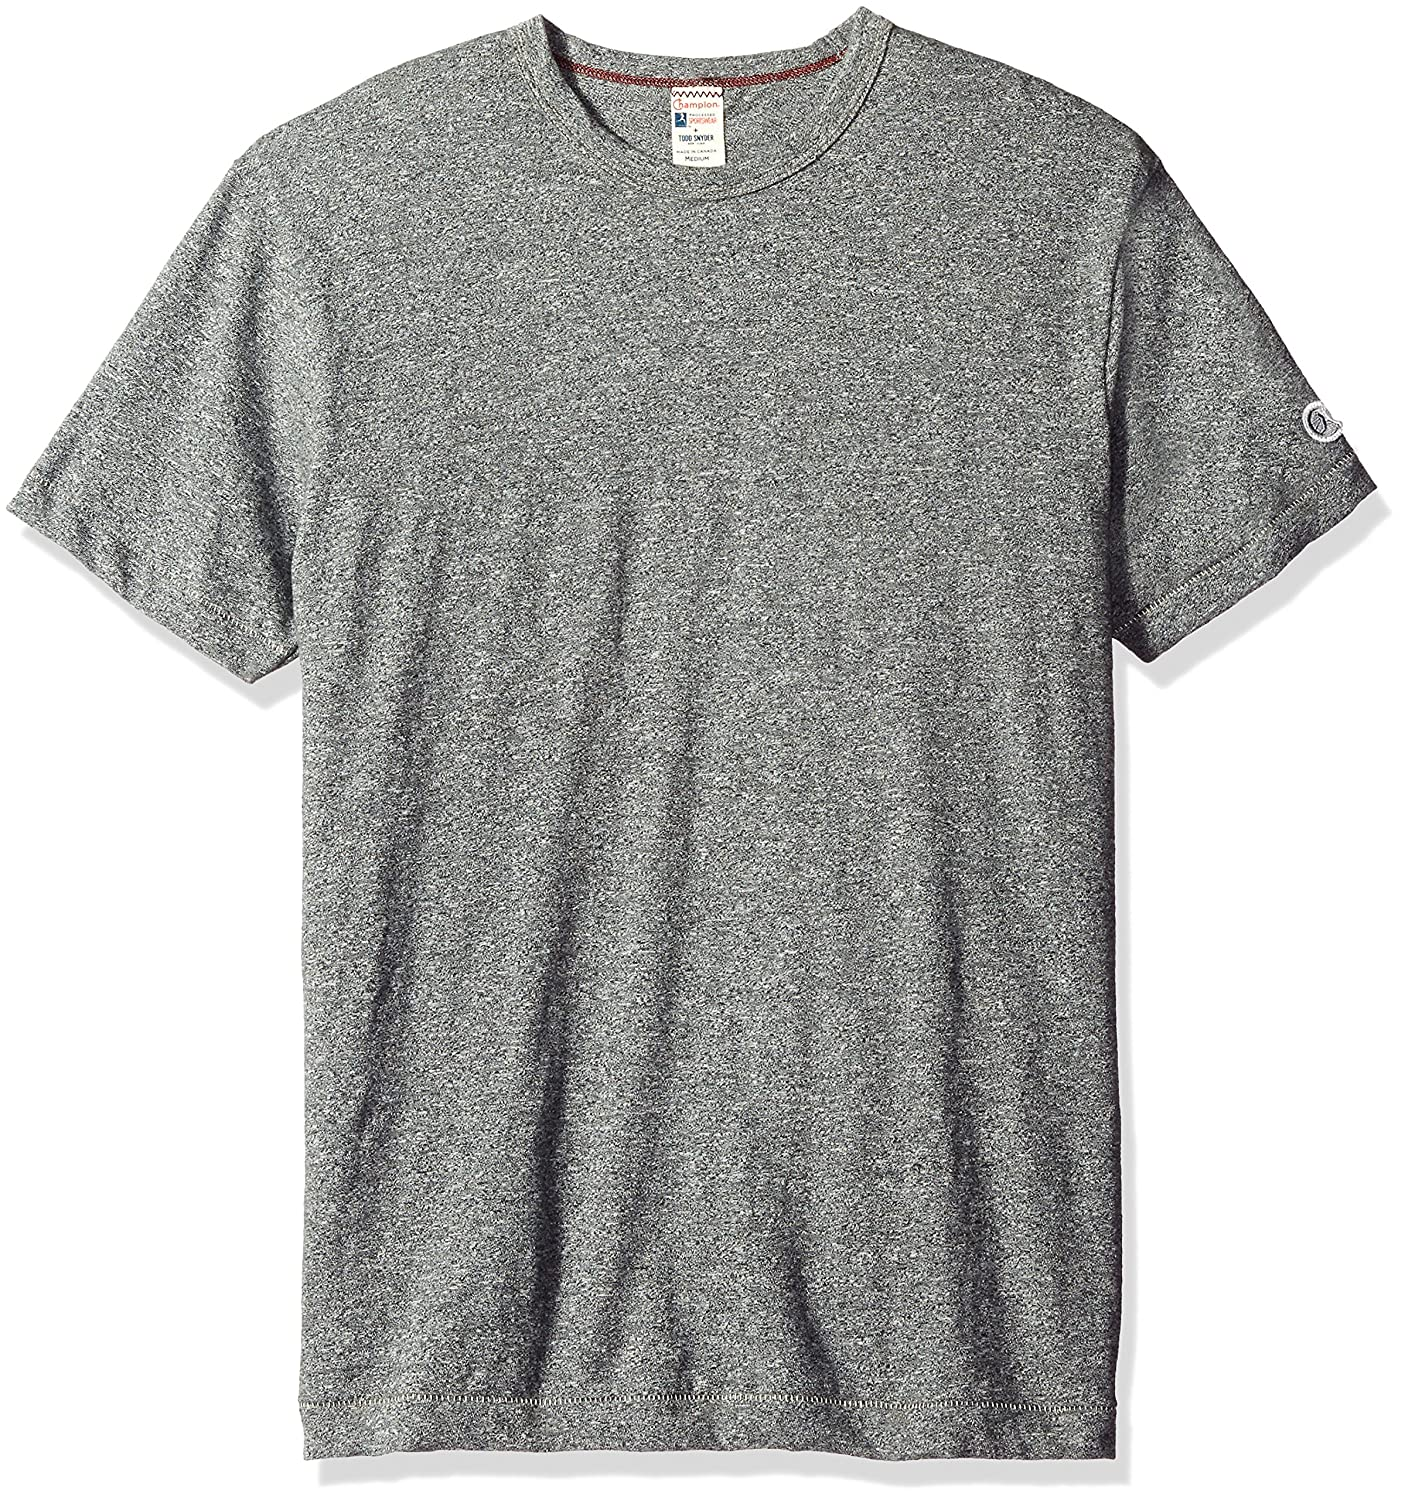 a236944e Todd Snyder + Champion Men's Heathered Basic Tee Salt/Pepper T-Shirt XS:  Amazon.co.uk: Clothing